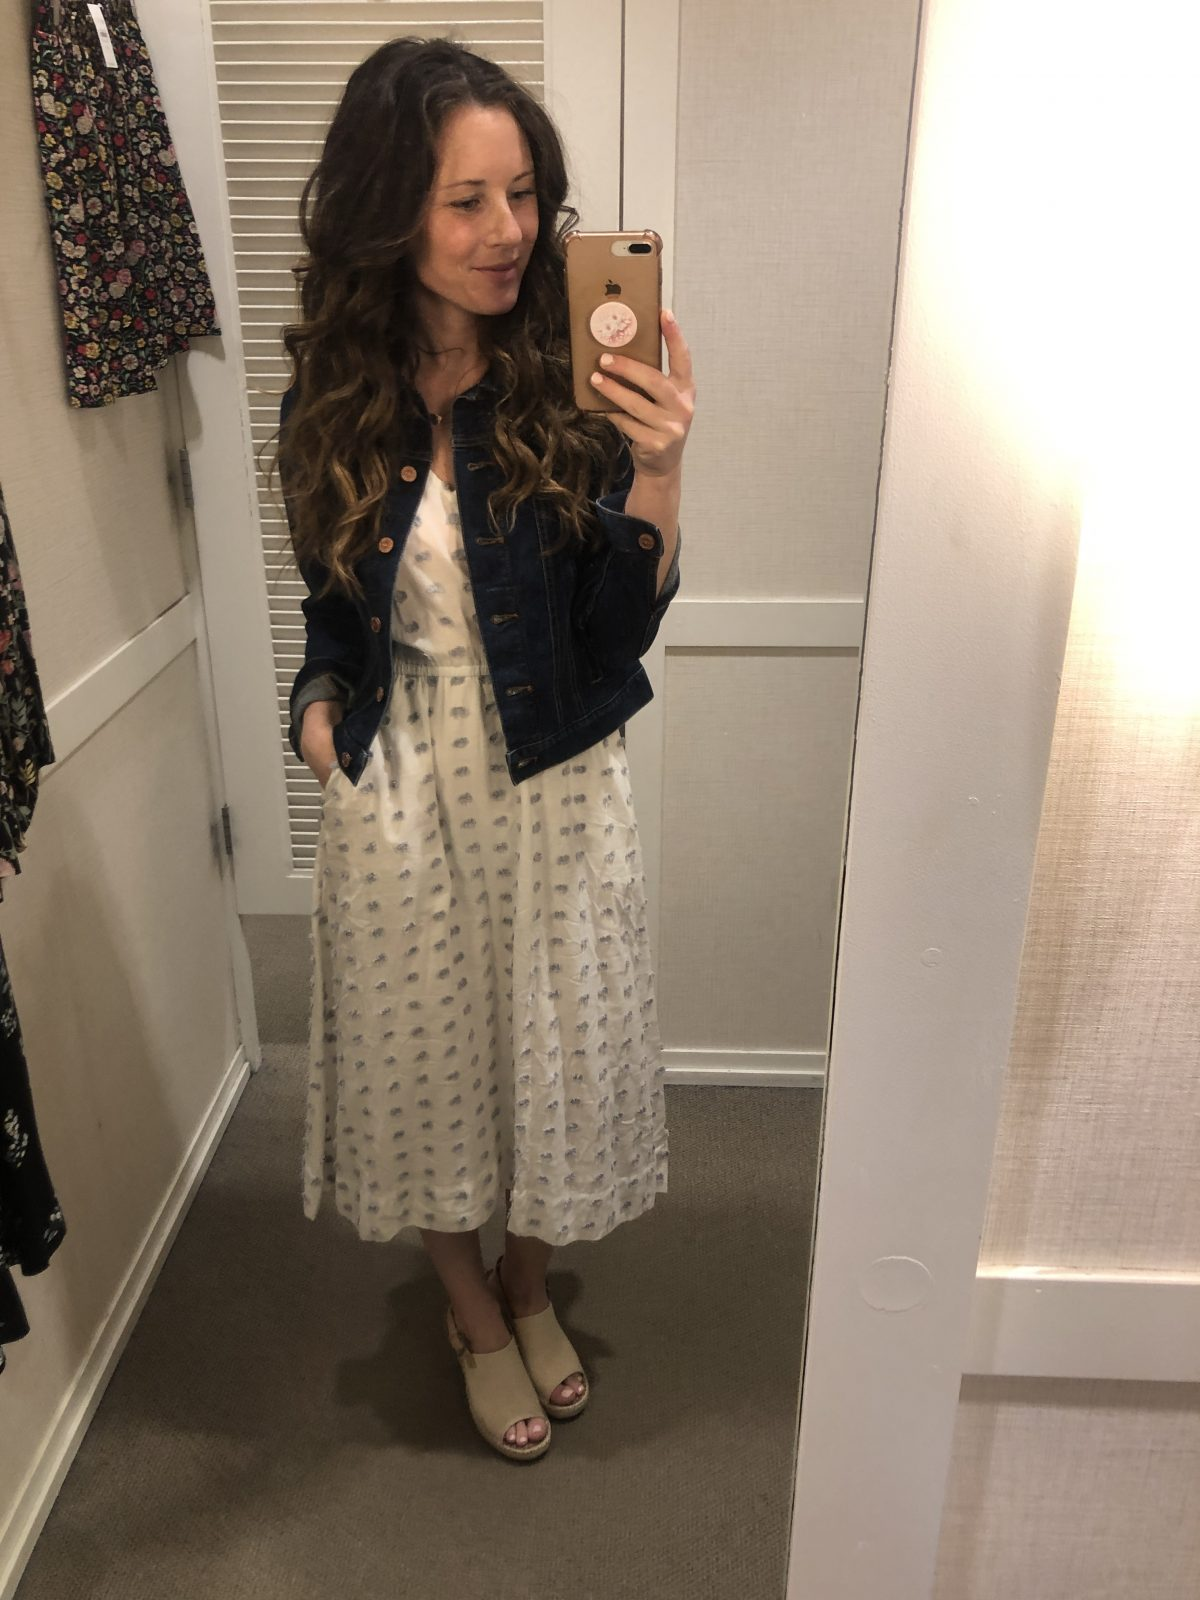 White and blue Patterned Midi Dress with Denim Jacket and Tan Peep Toe Slingback Espadrille on Woman at LOFT Confessions of a Northern Belle